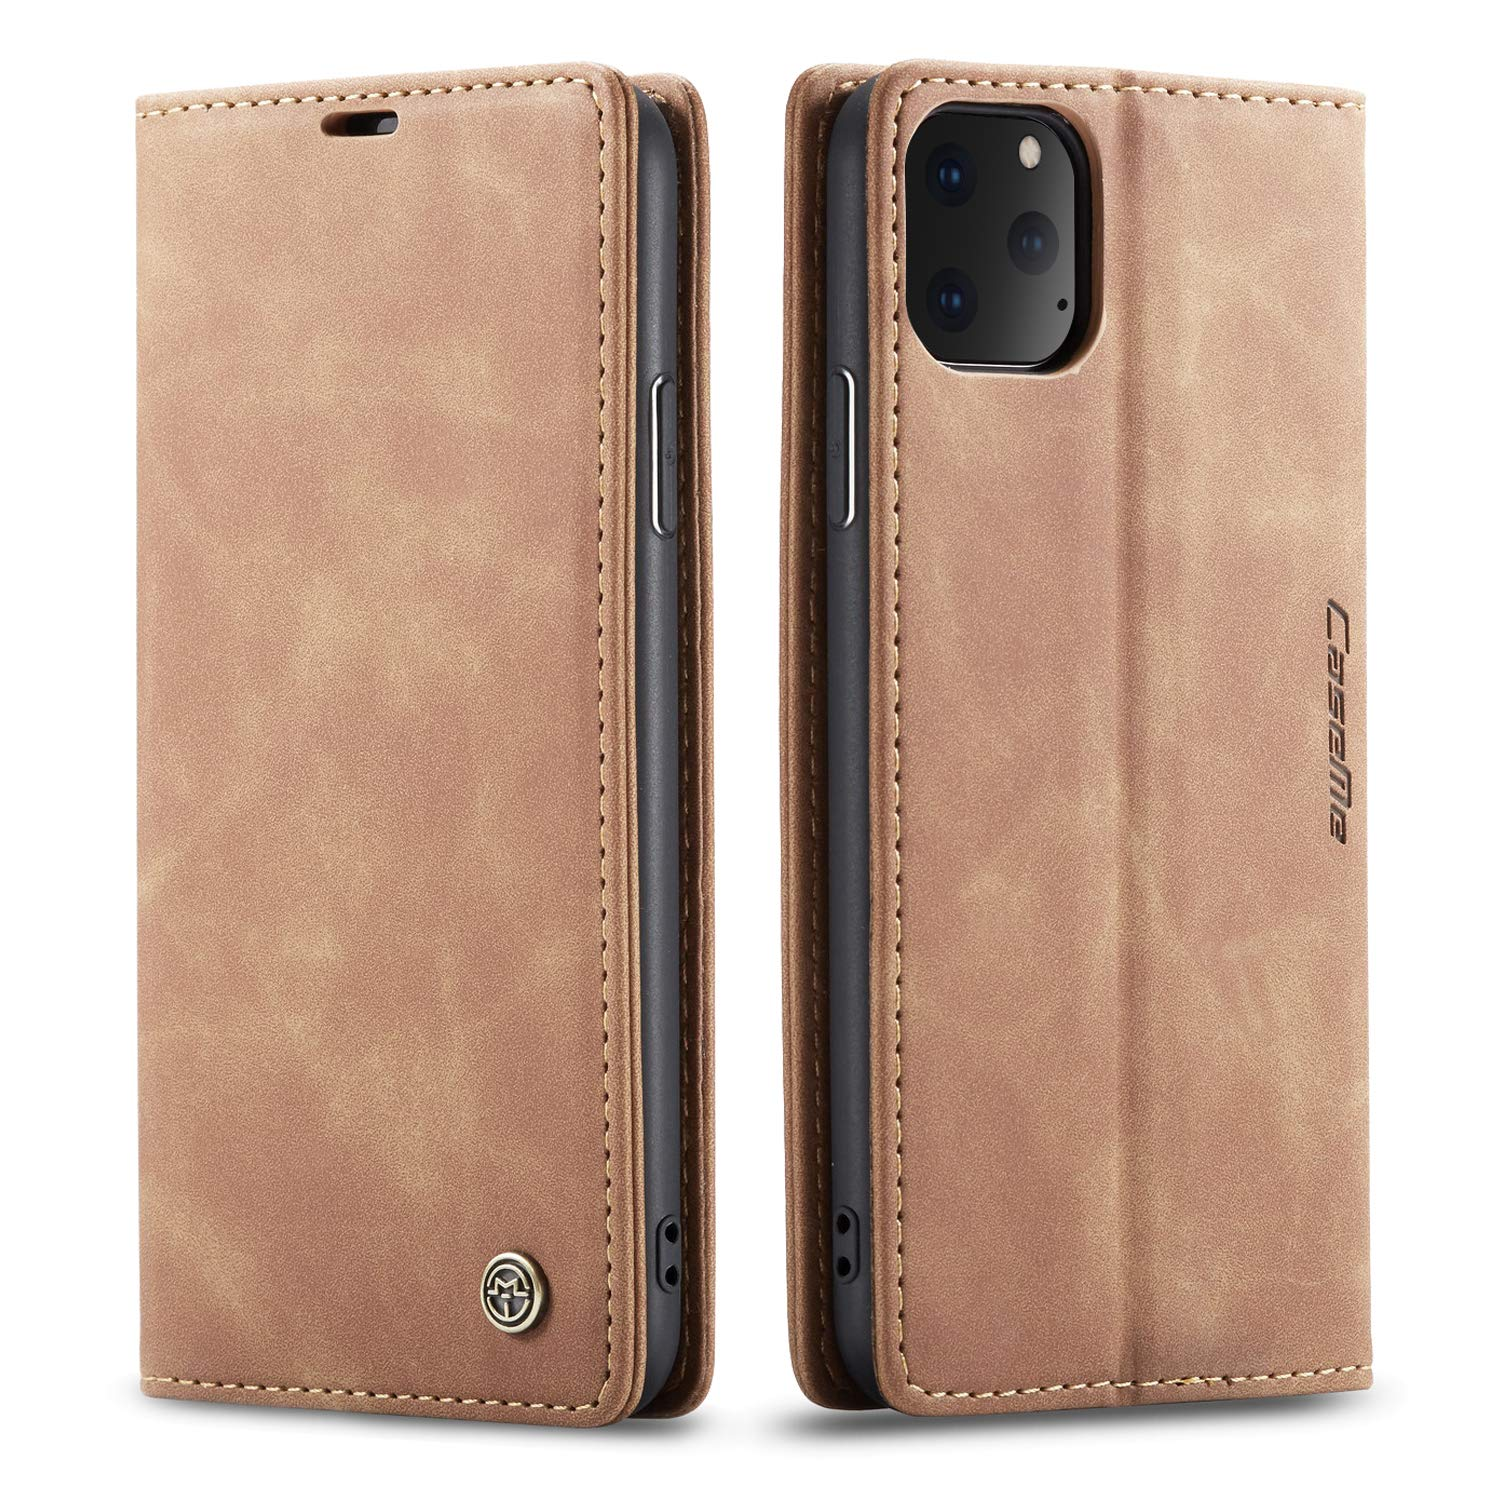 iPhone 11/11 Pro/ 11 Pro Max Slim Folio Leather Wallet Card Holder Case Kickstand Magnetic Closure Potective Flip Cover